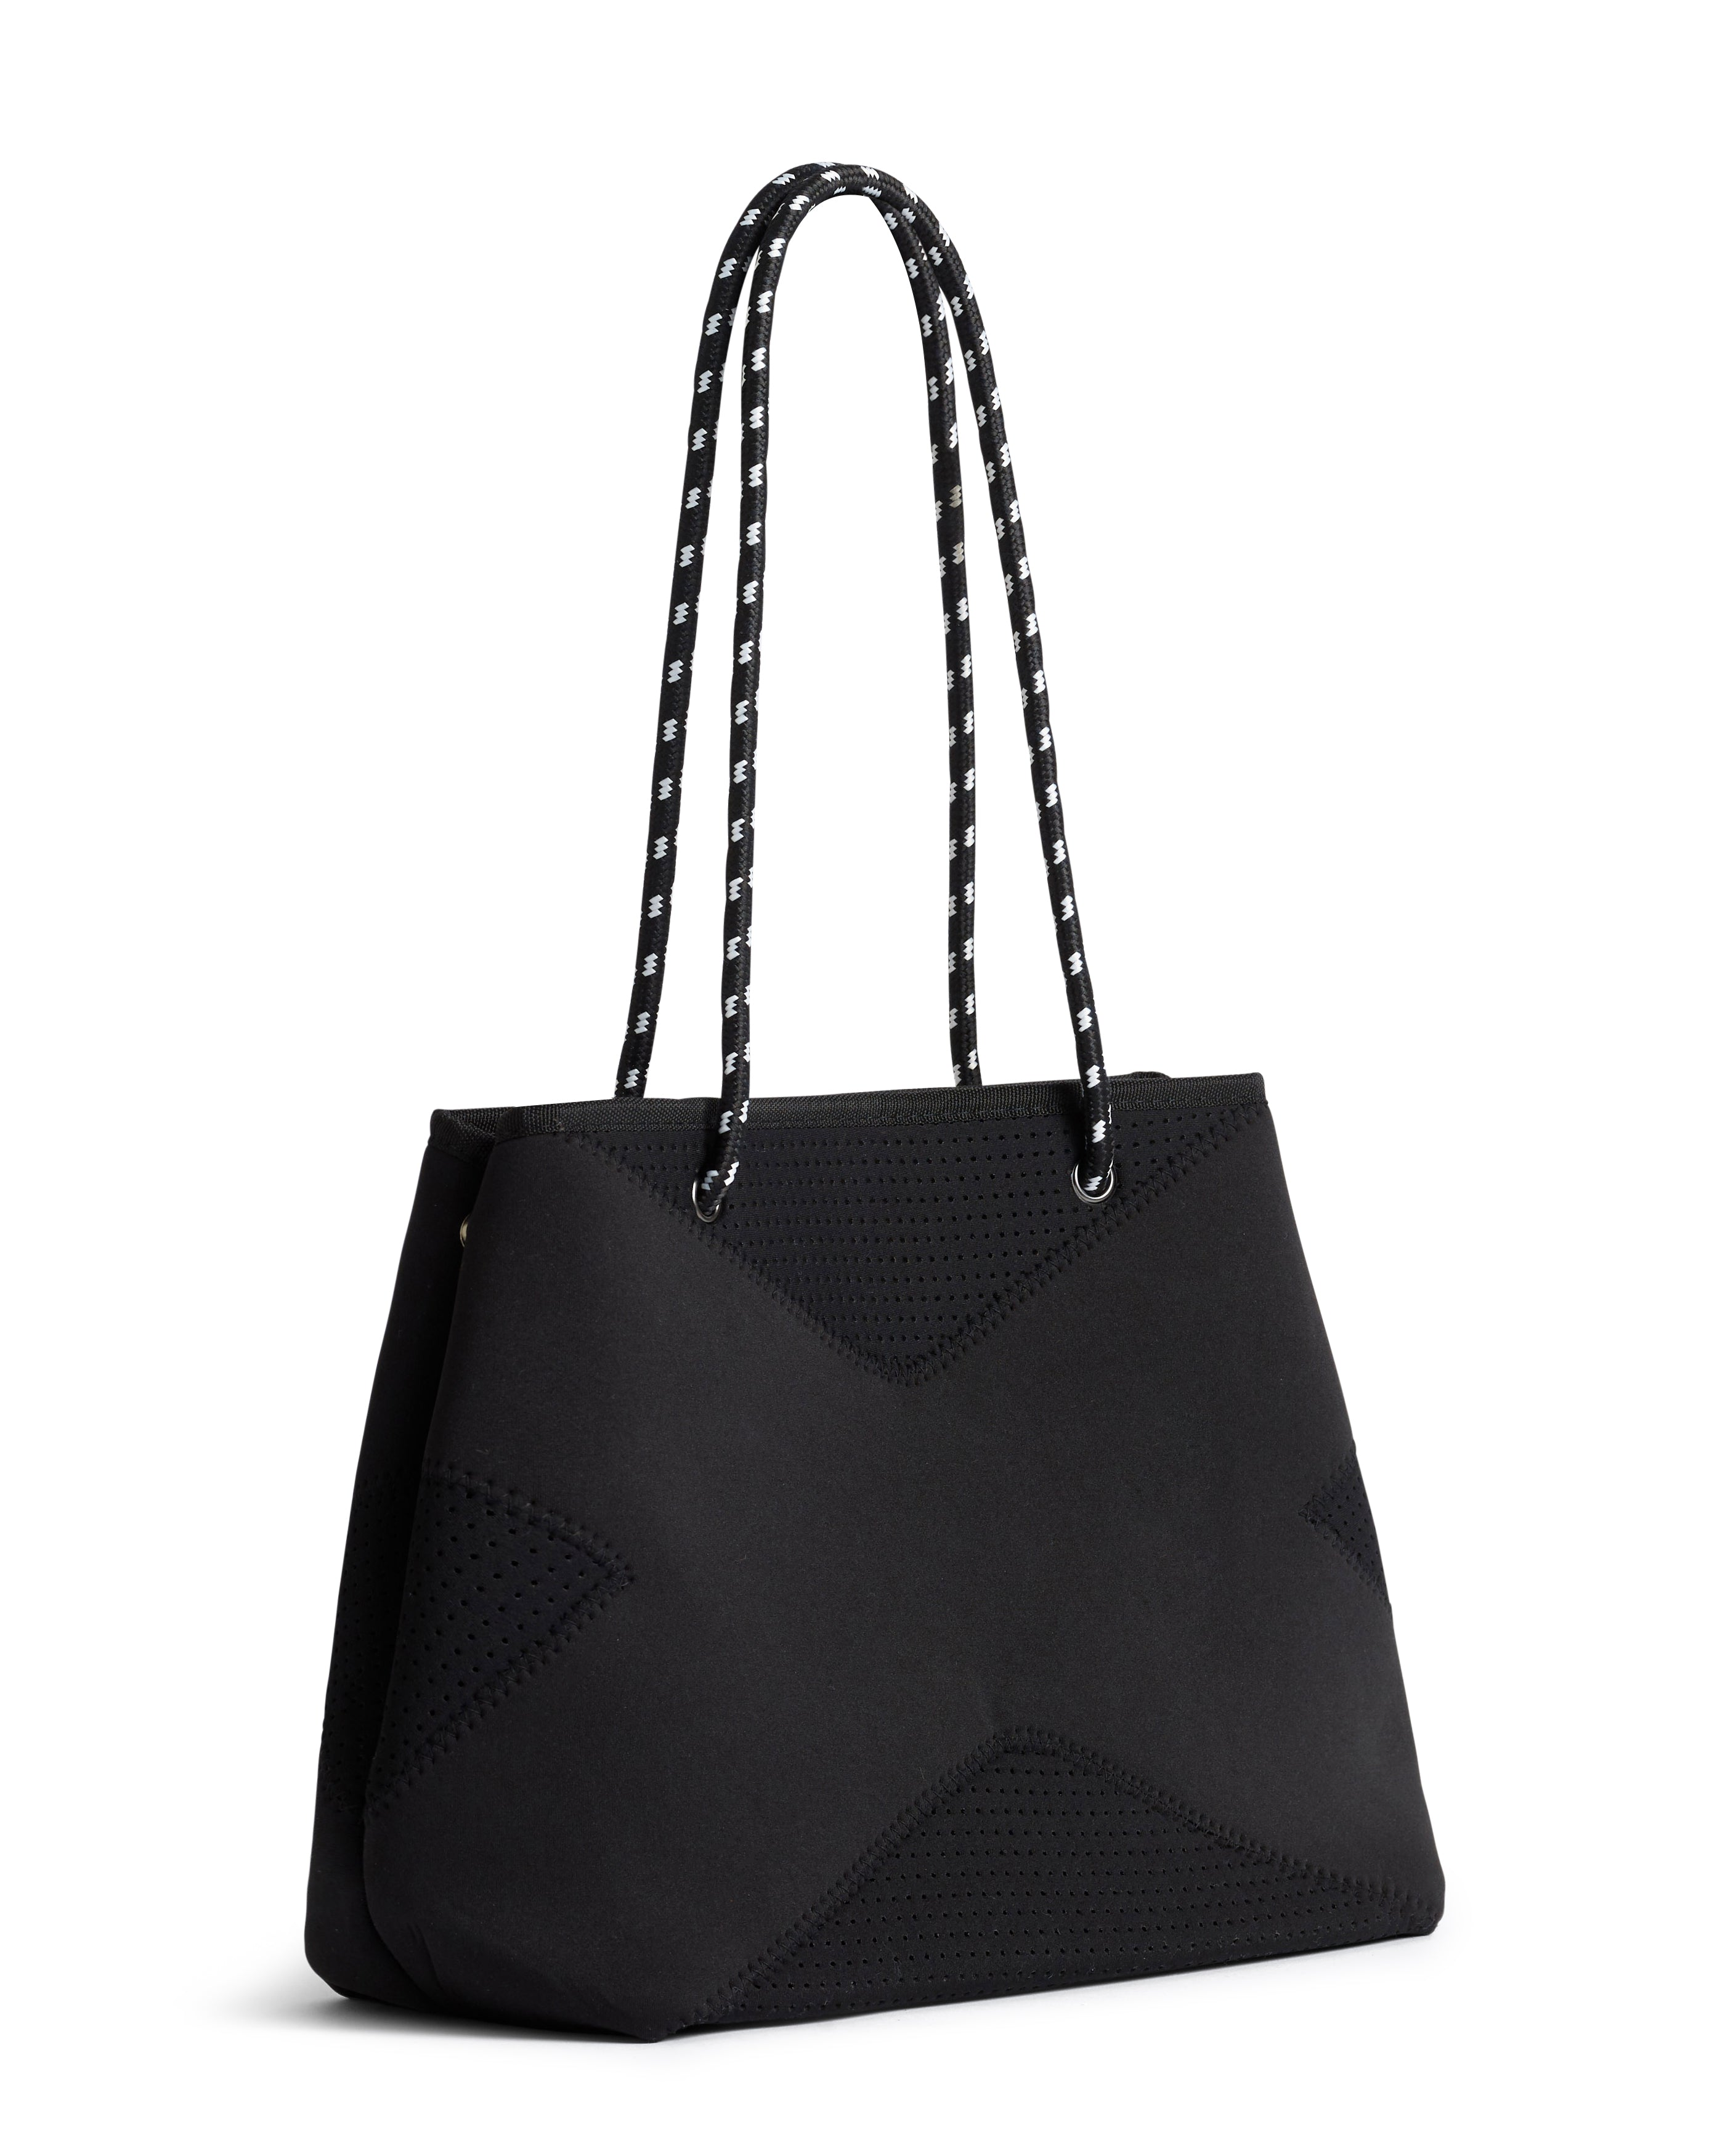 The X Bag (BLACK) Neoprene Tote Bag